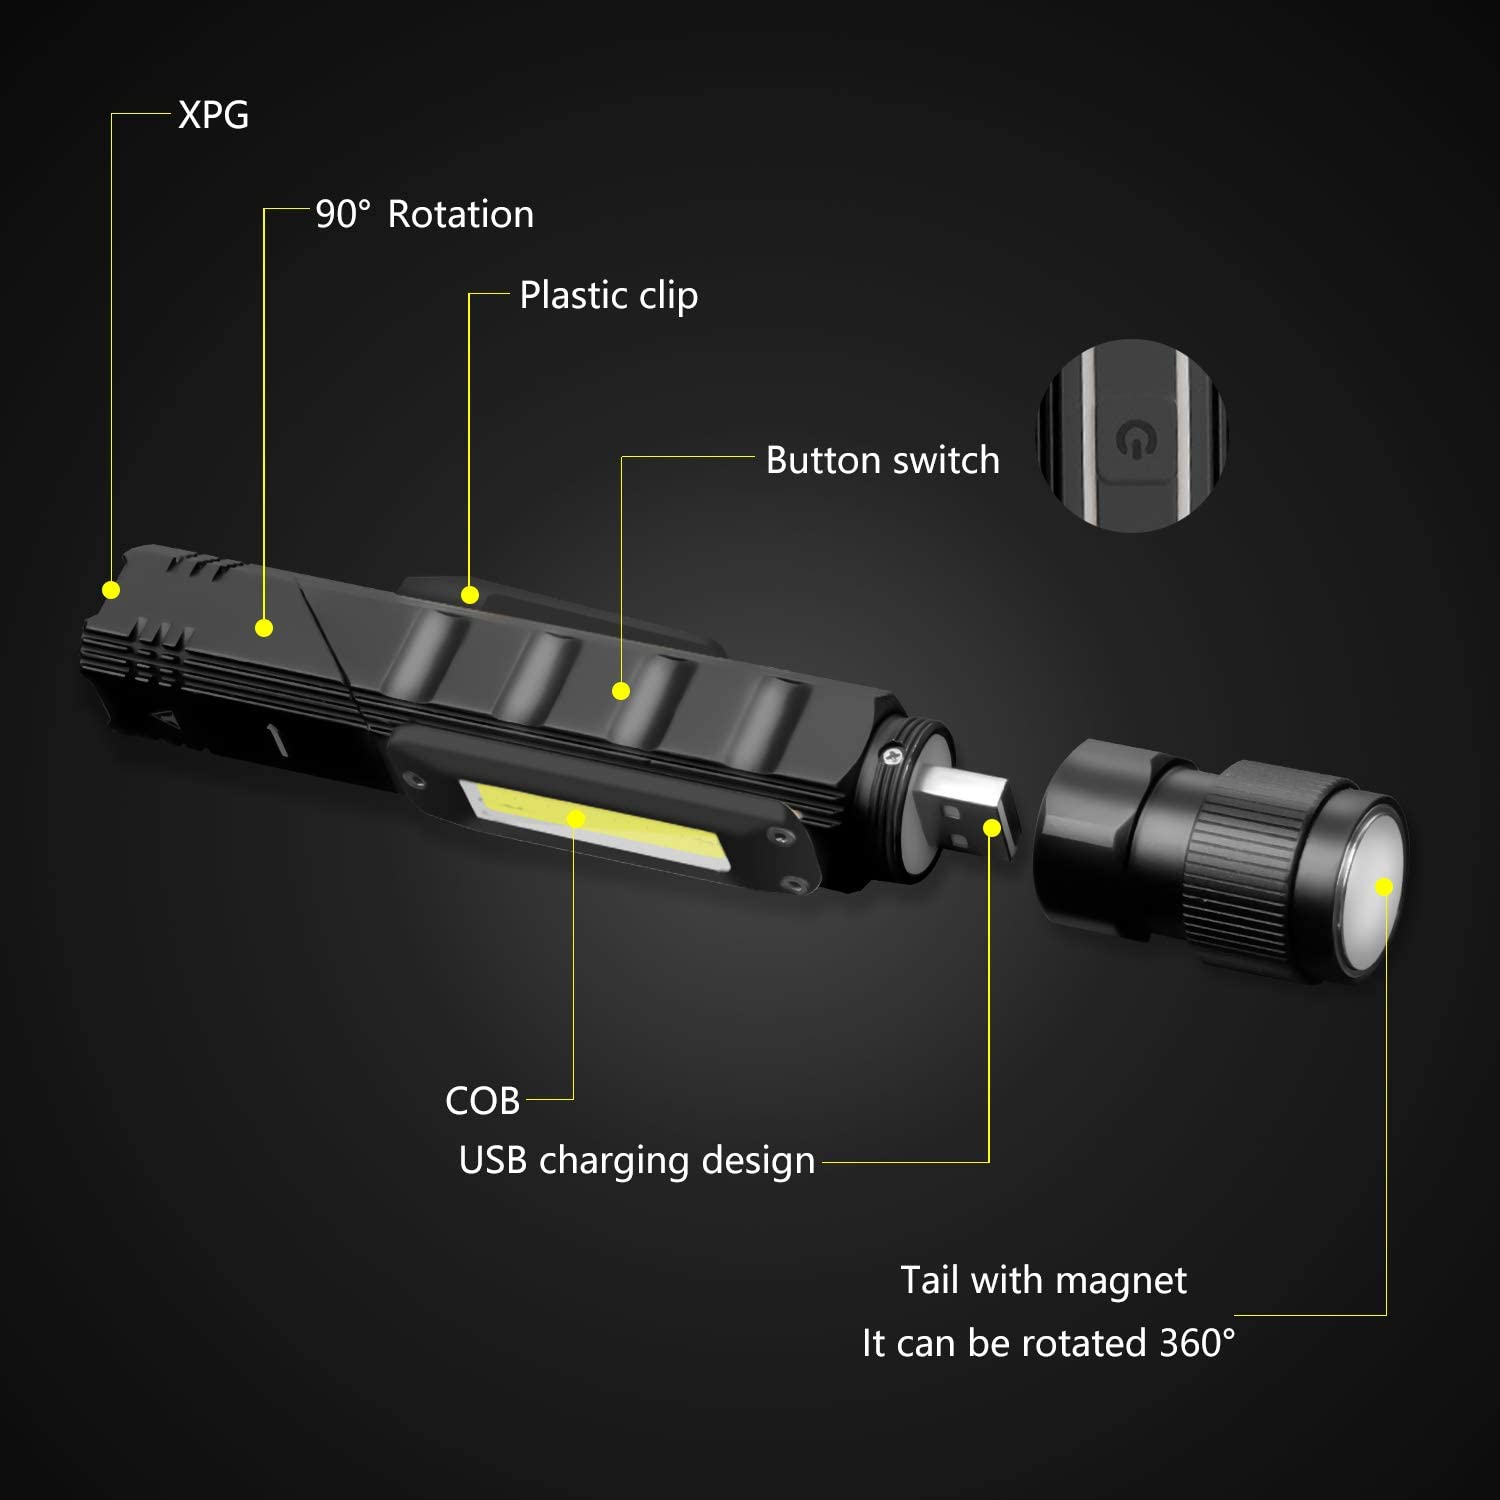 Emergency Euyee USB Rechargeable Flashlight Magnetic Tactical camping lights High Lumens -5 Modes 90 Degree Adjustable head lamp Include Batteries IPX65 Waterproof LED Flashlight for Hiking